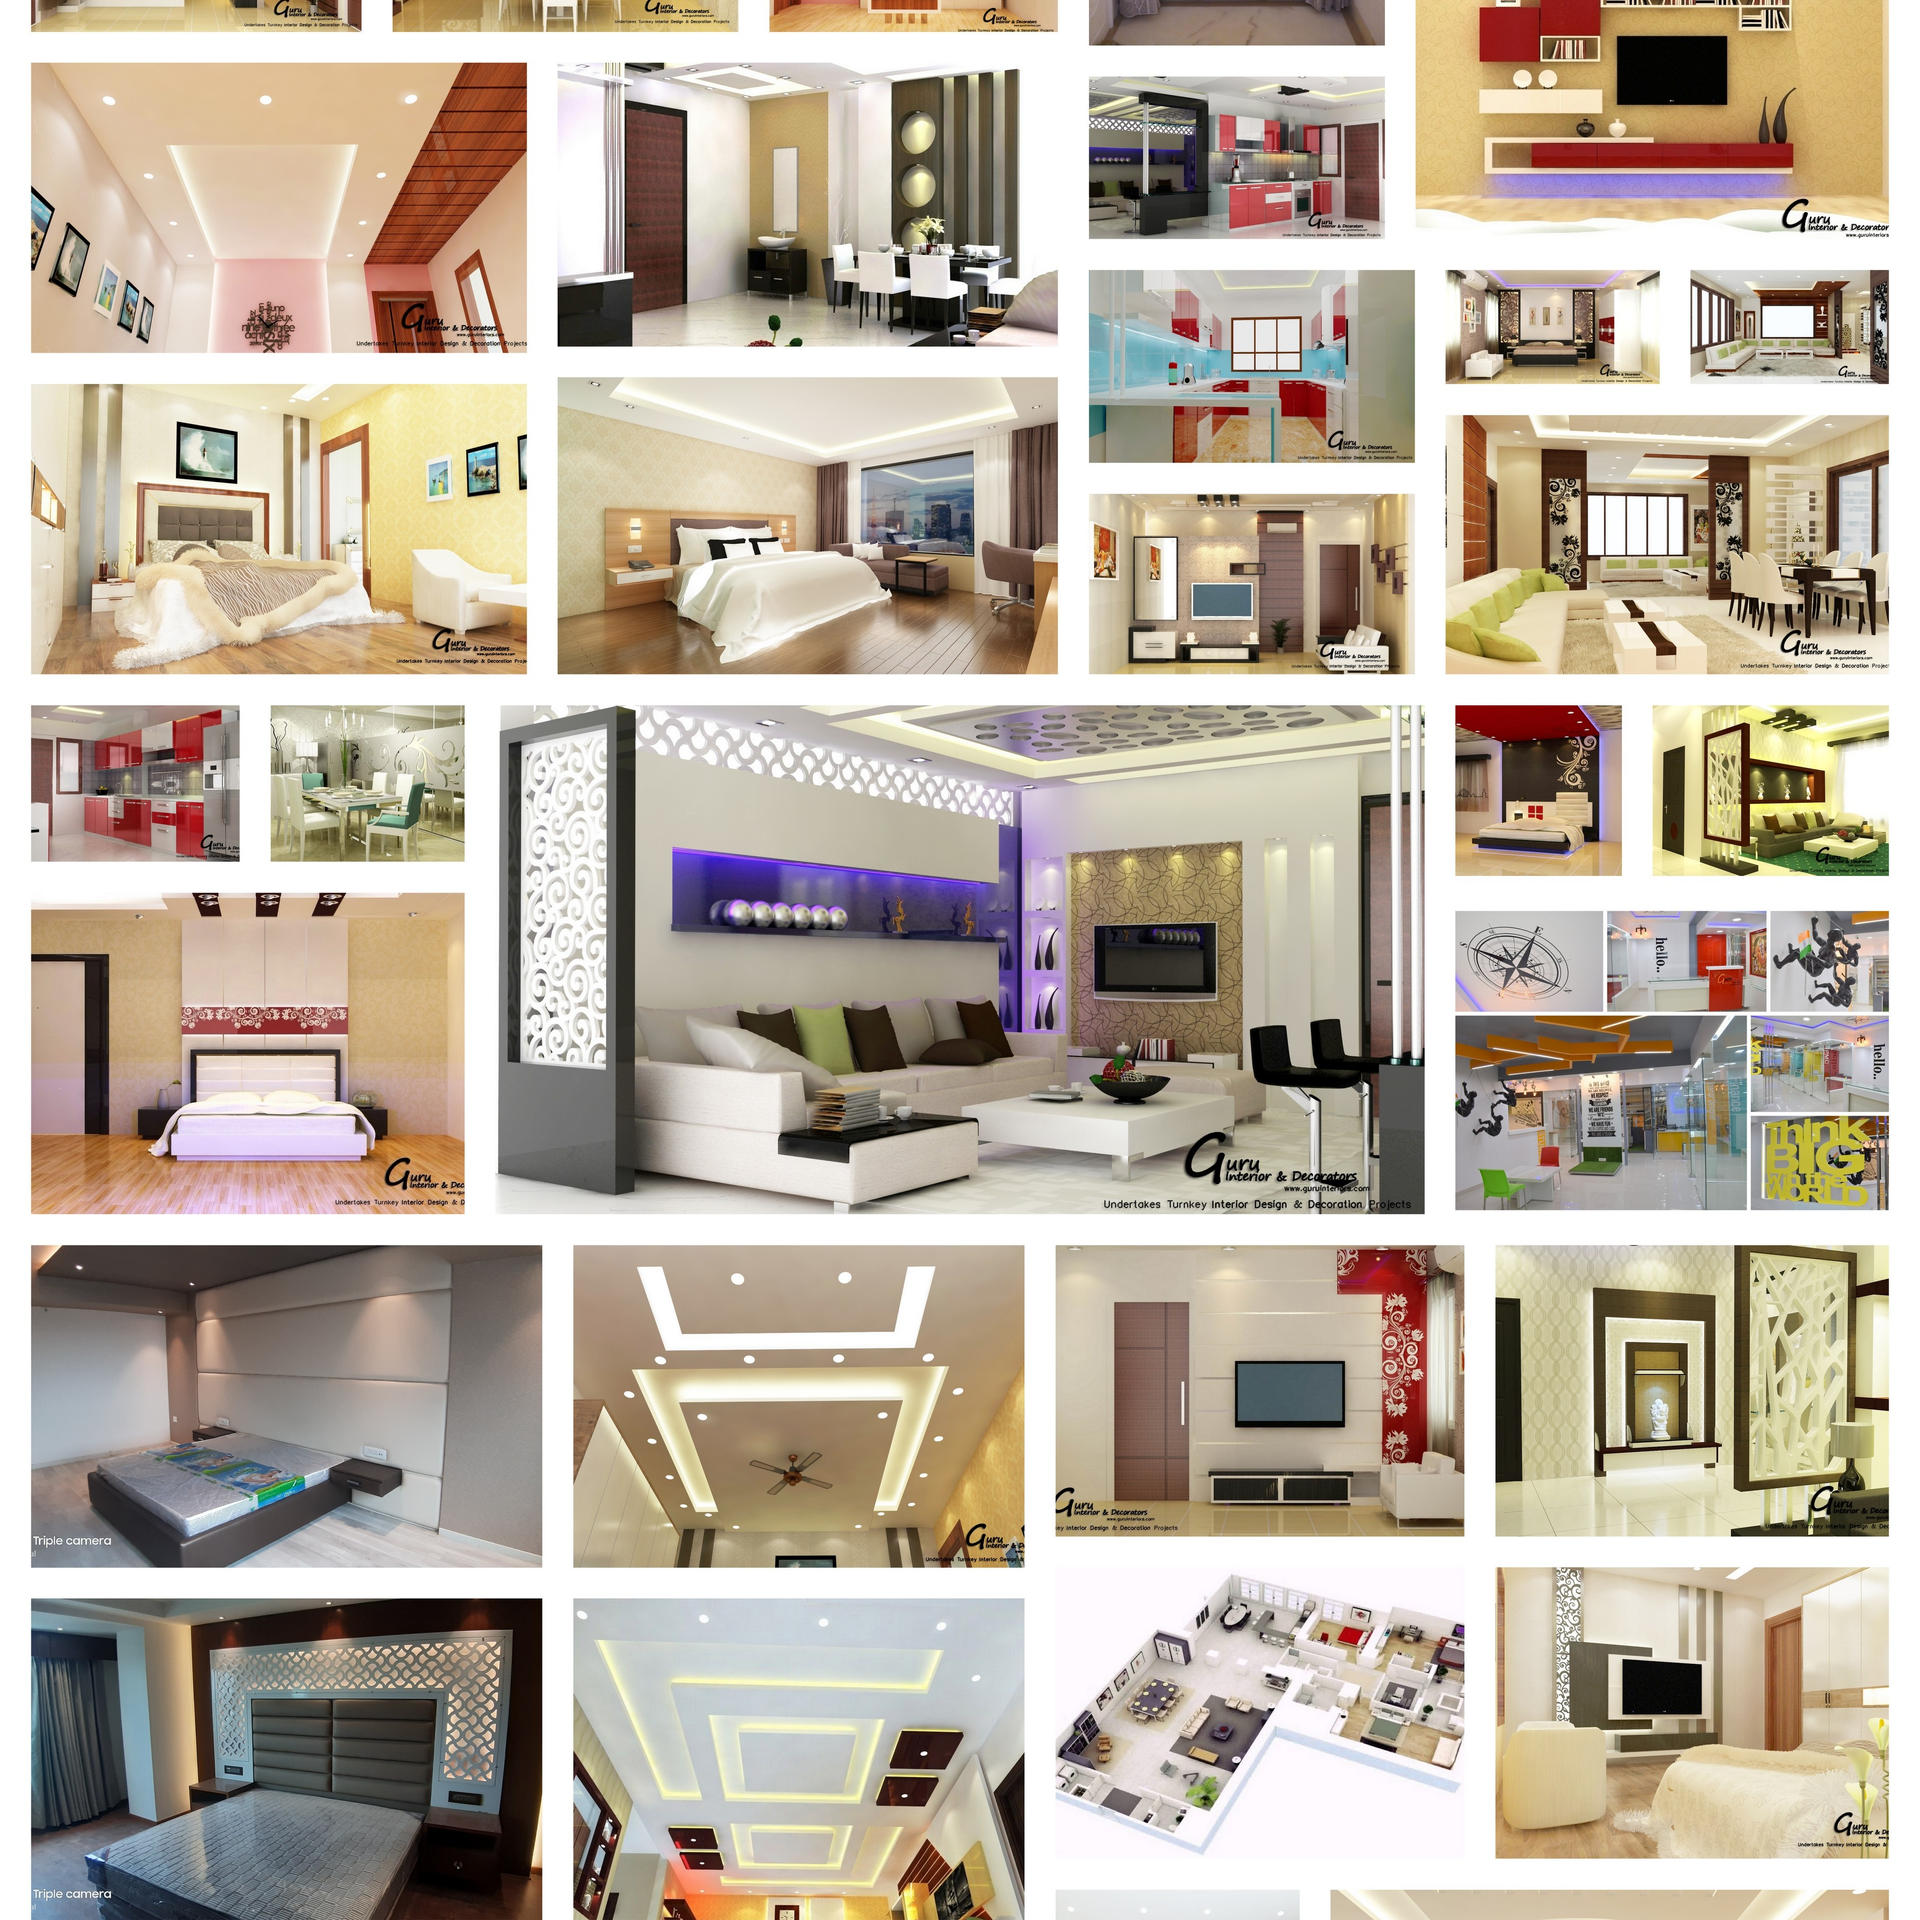 Residence Interior COLLAGE.jpg